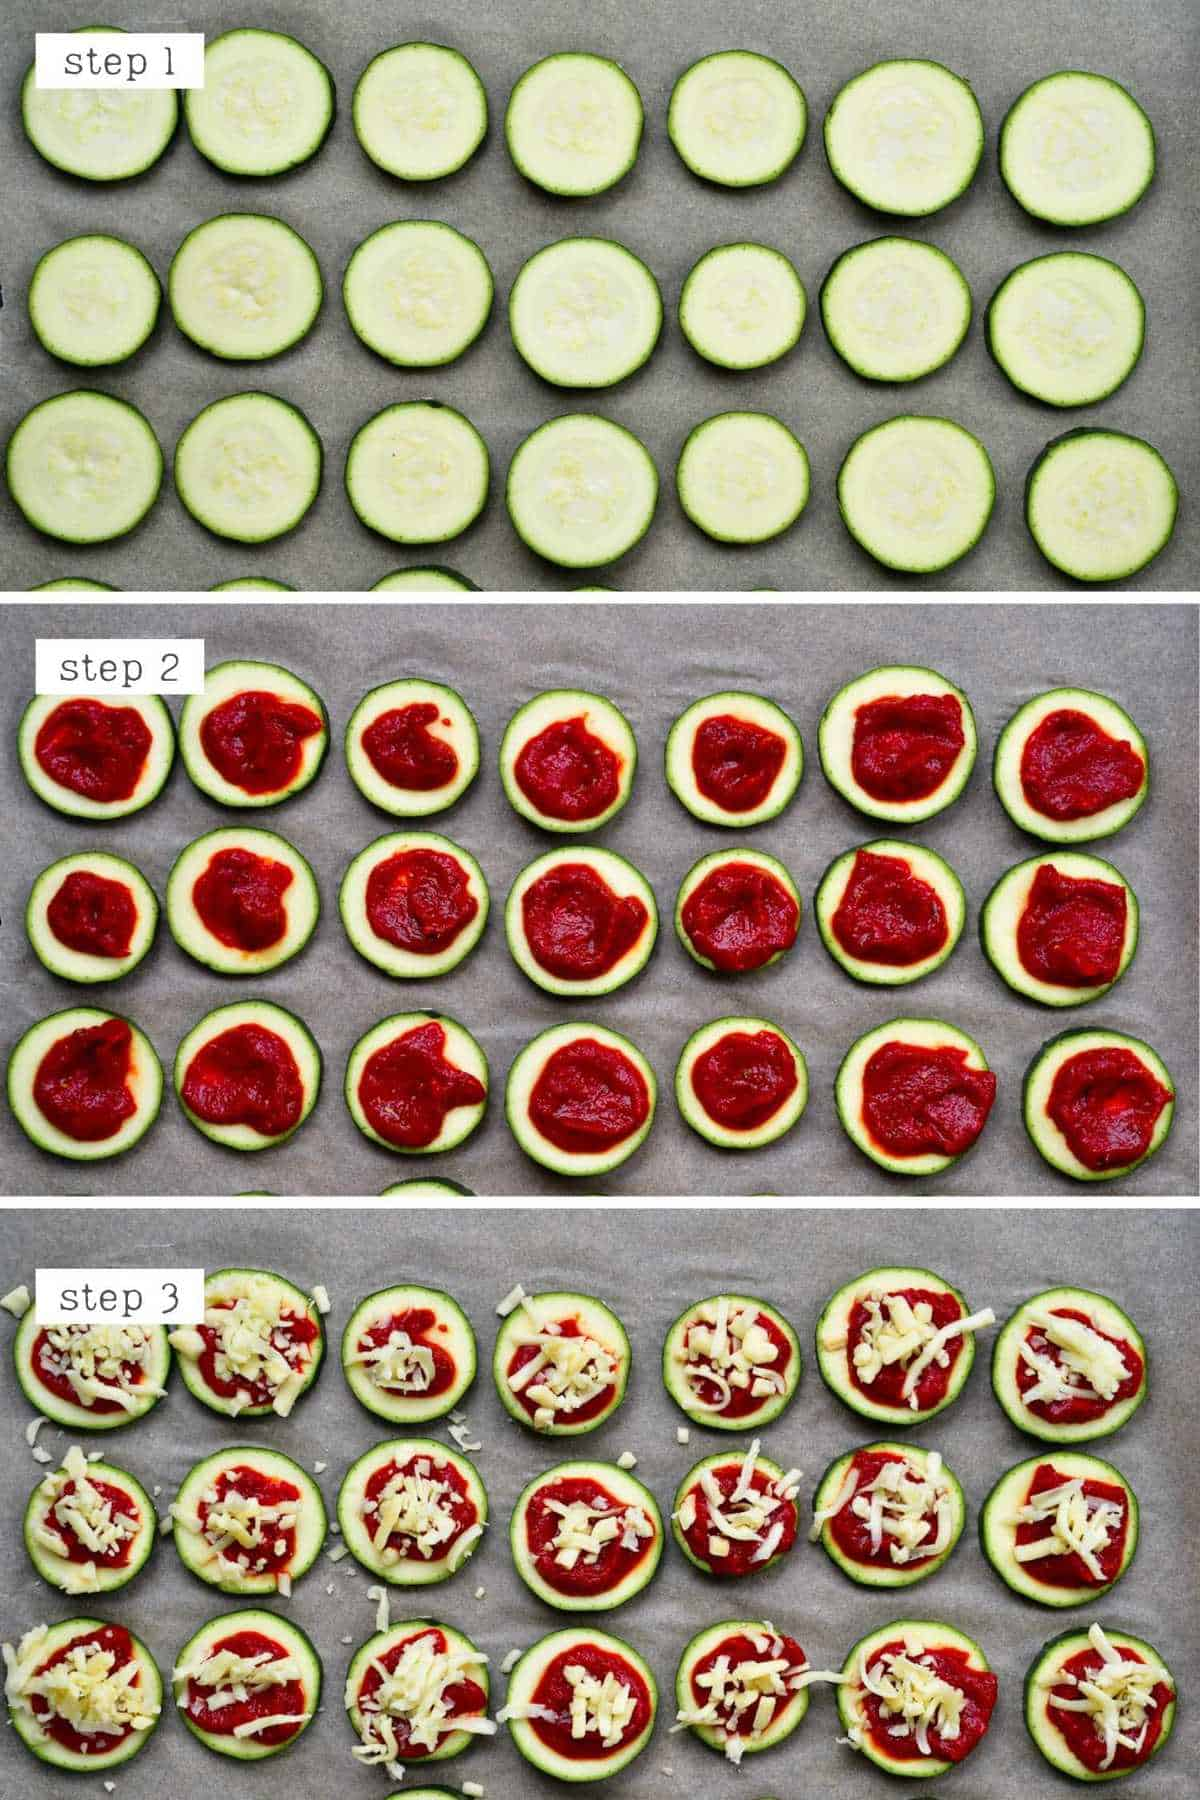 Steps for making zucchini pizzas